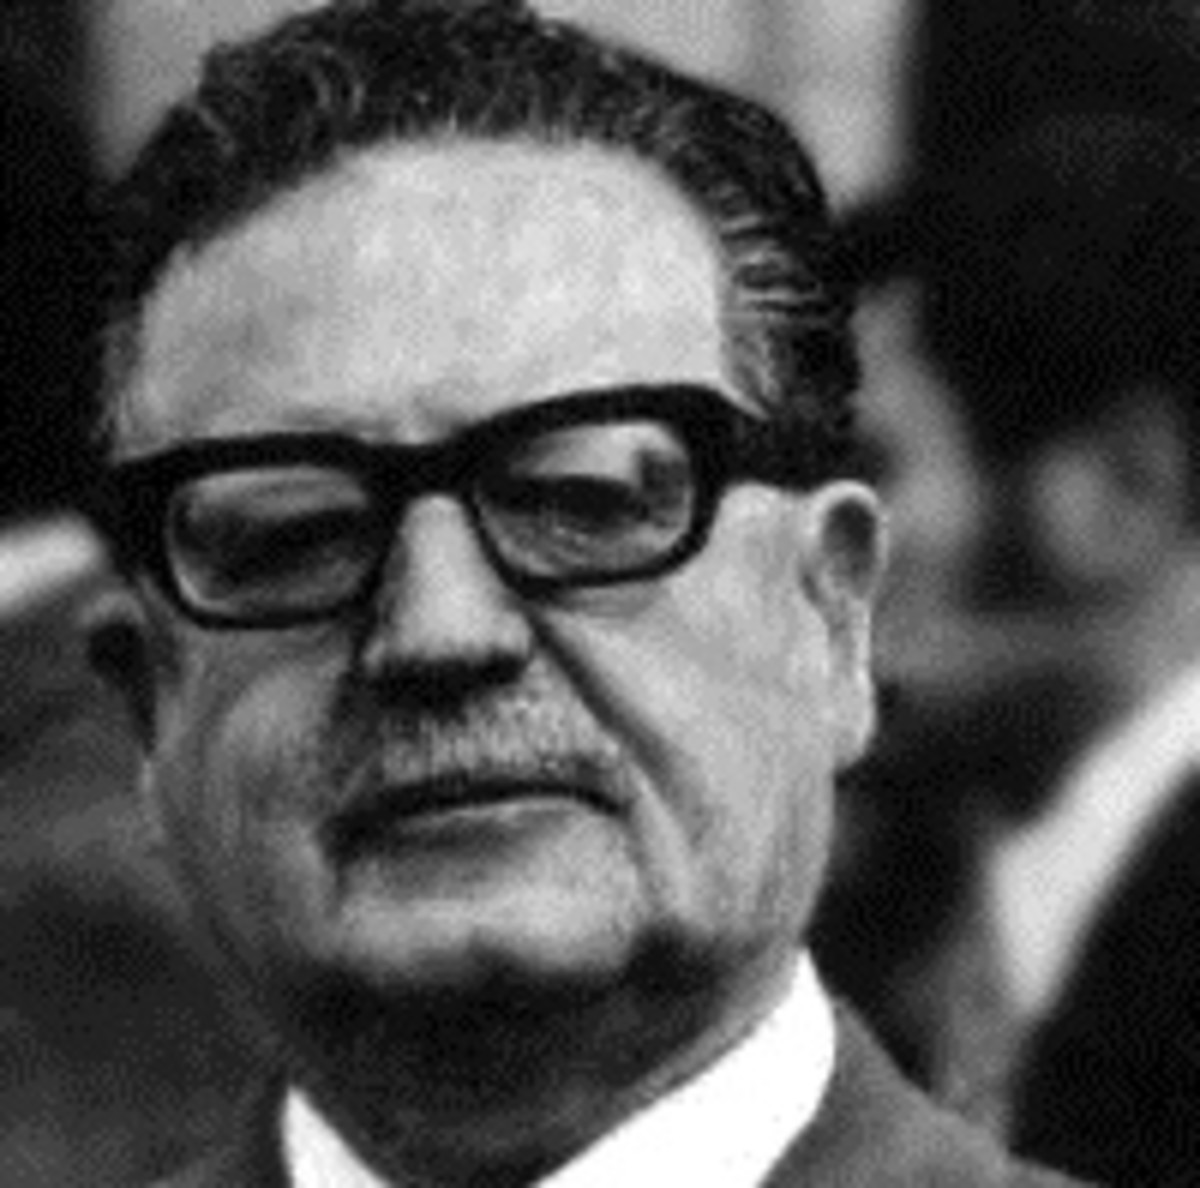 Salvador Allende was another elected leader deposed in a CIA coup.